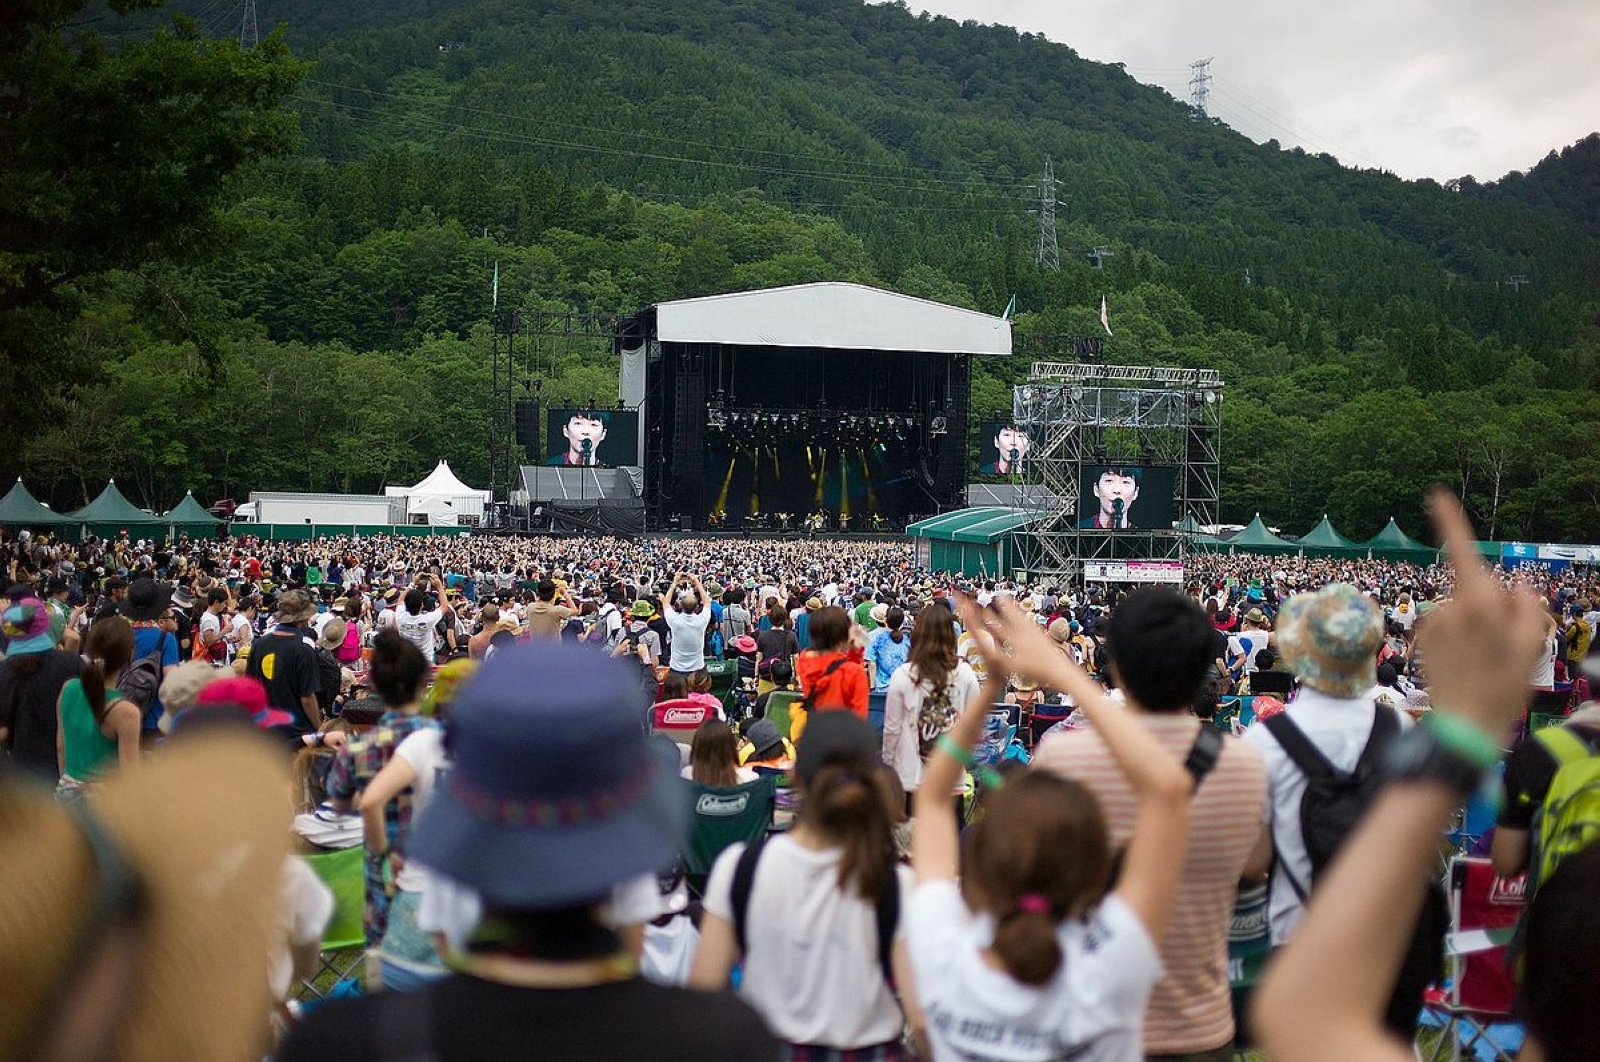 Gen Hoshino at the Fuji Rock Festival 2015.